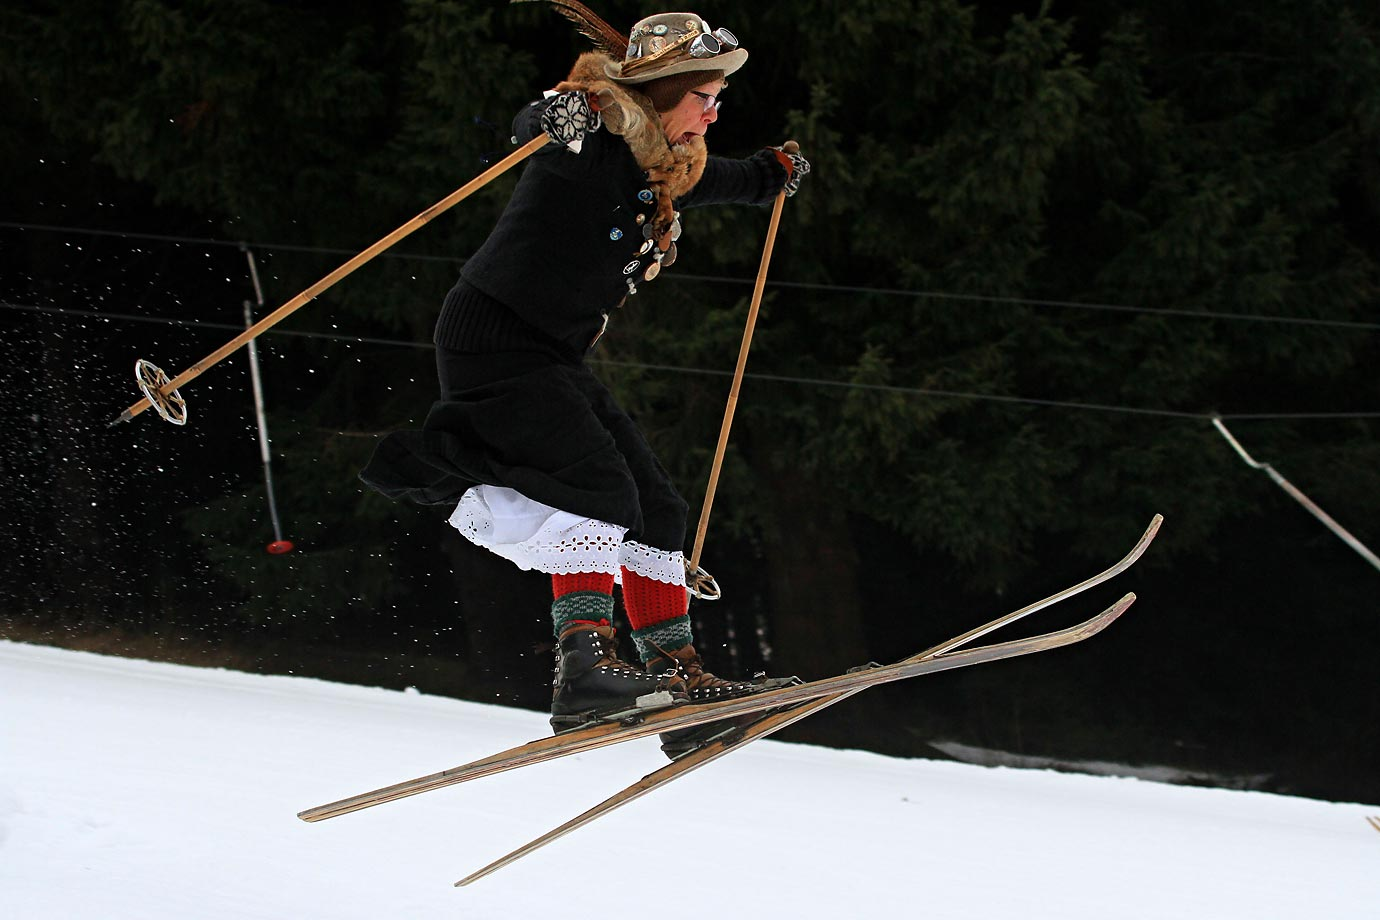 A skier from Austria takes part in the skiing championships on old wooden skis from the 19th century in Olesnice, east Bohemia.